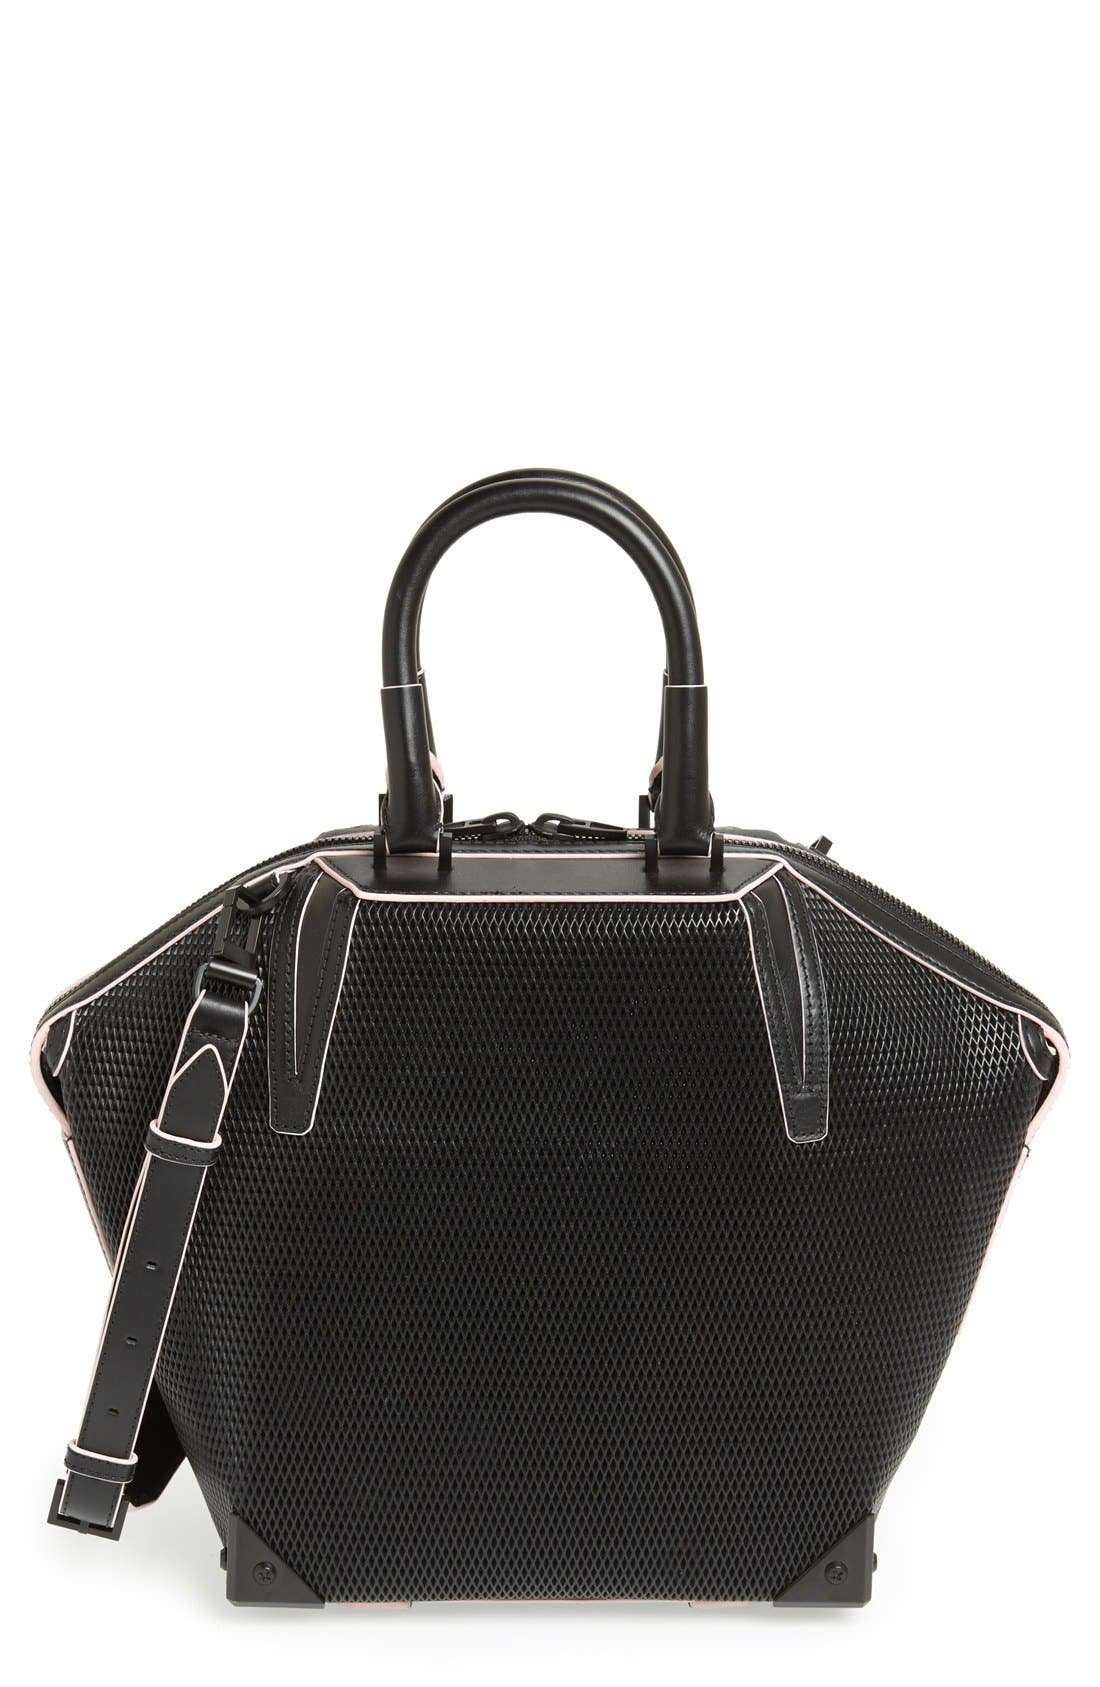 Alternate Image 1 Selected - Alexander Wang 'Small Emile' Leather Tote